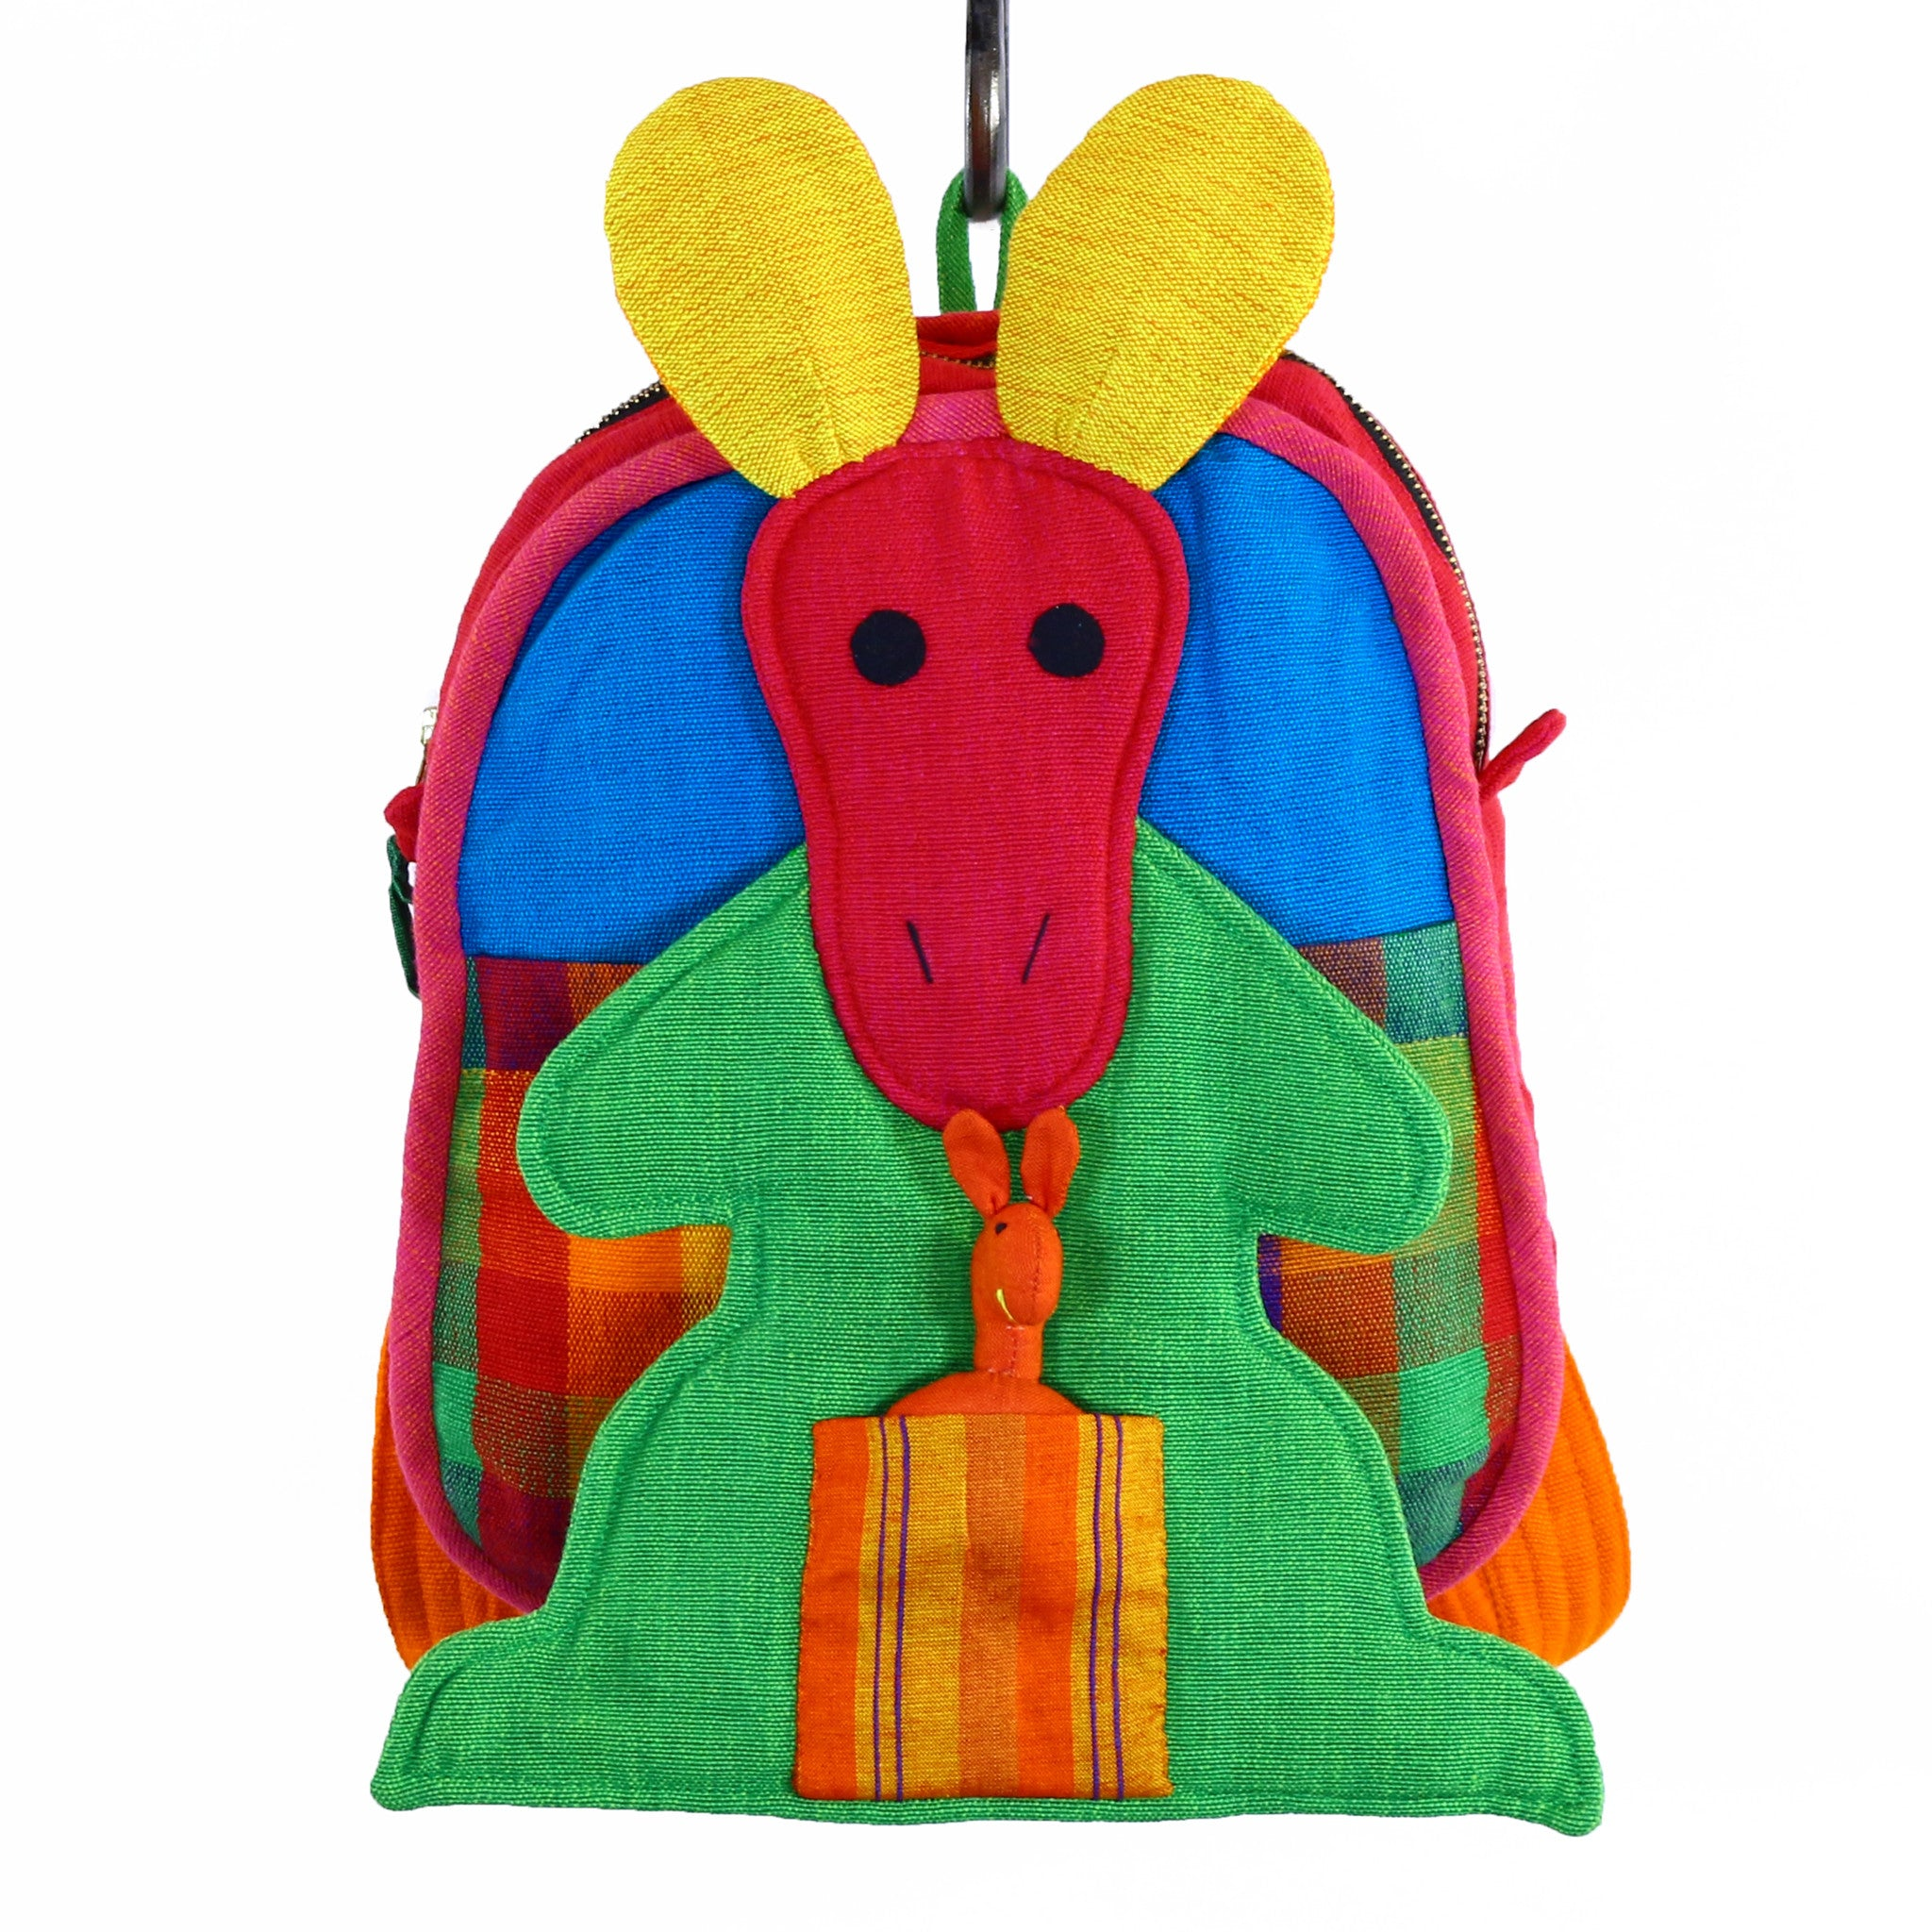 Kangaroo Backpack – Carousel fabric